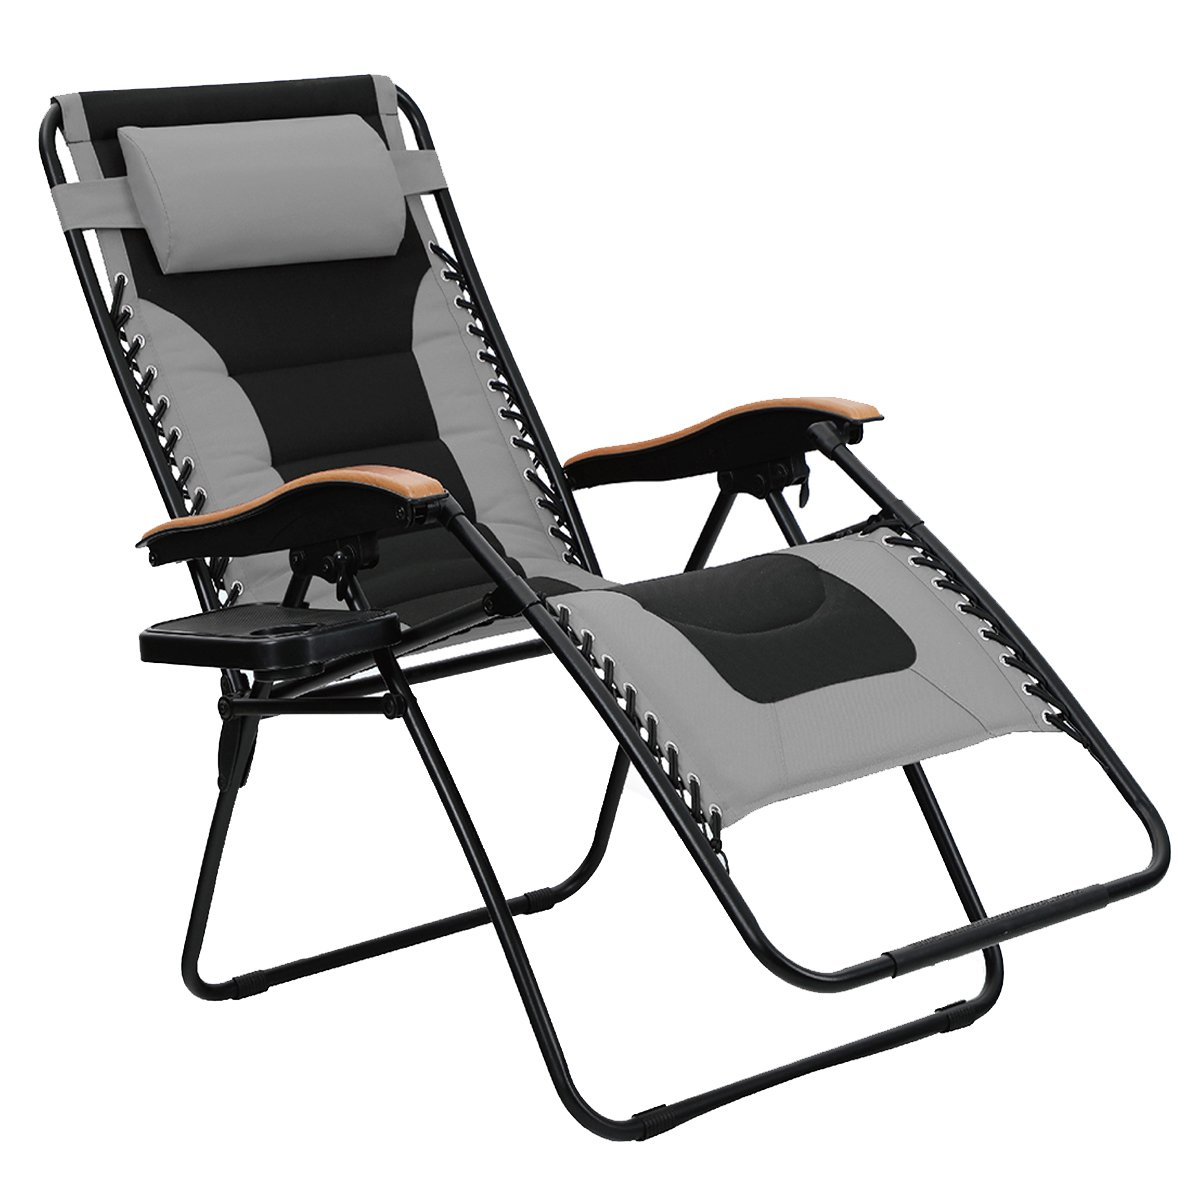 PHI VILLA Oversize XL Padded Zero Gravity Lounge Chair Wider Armrest Adjustable Recliner with Cup Holder, Support 350 LBS, Grey by PHI VILLA